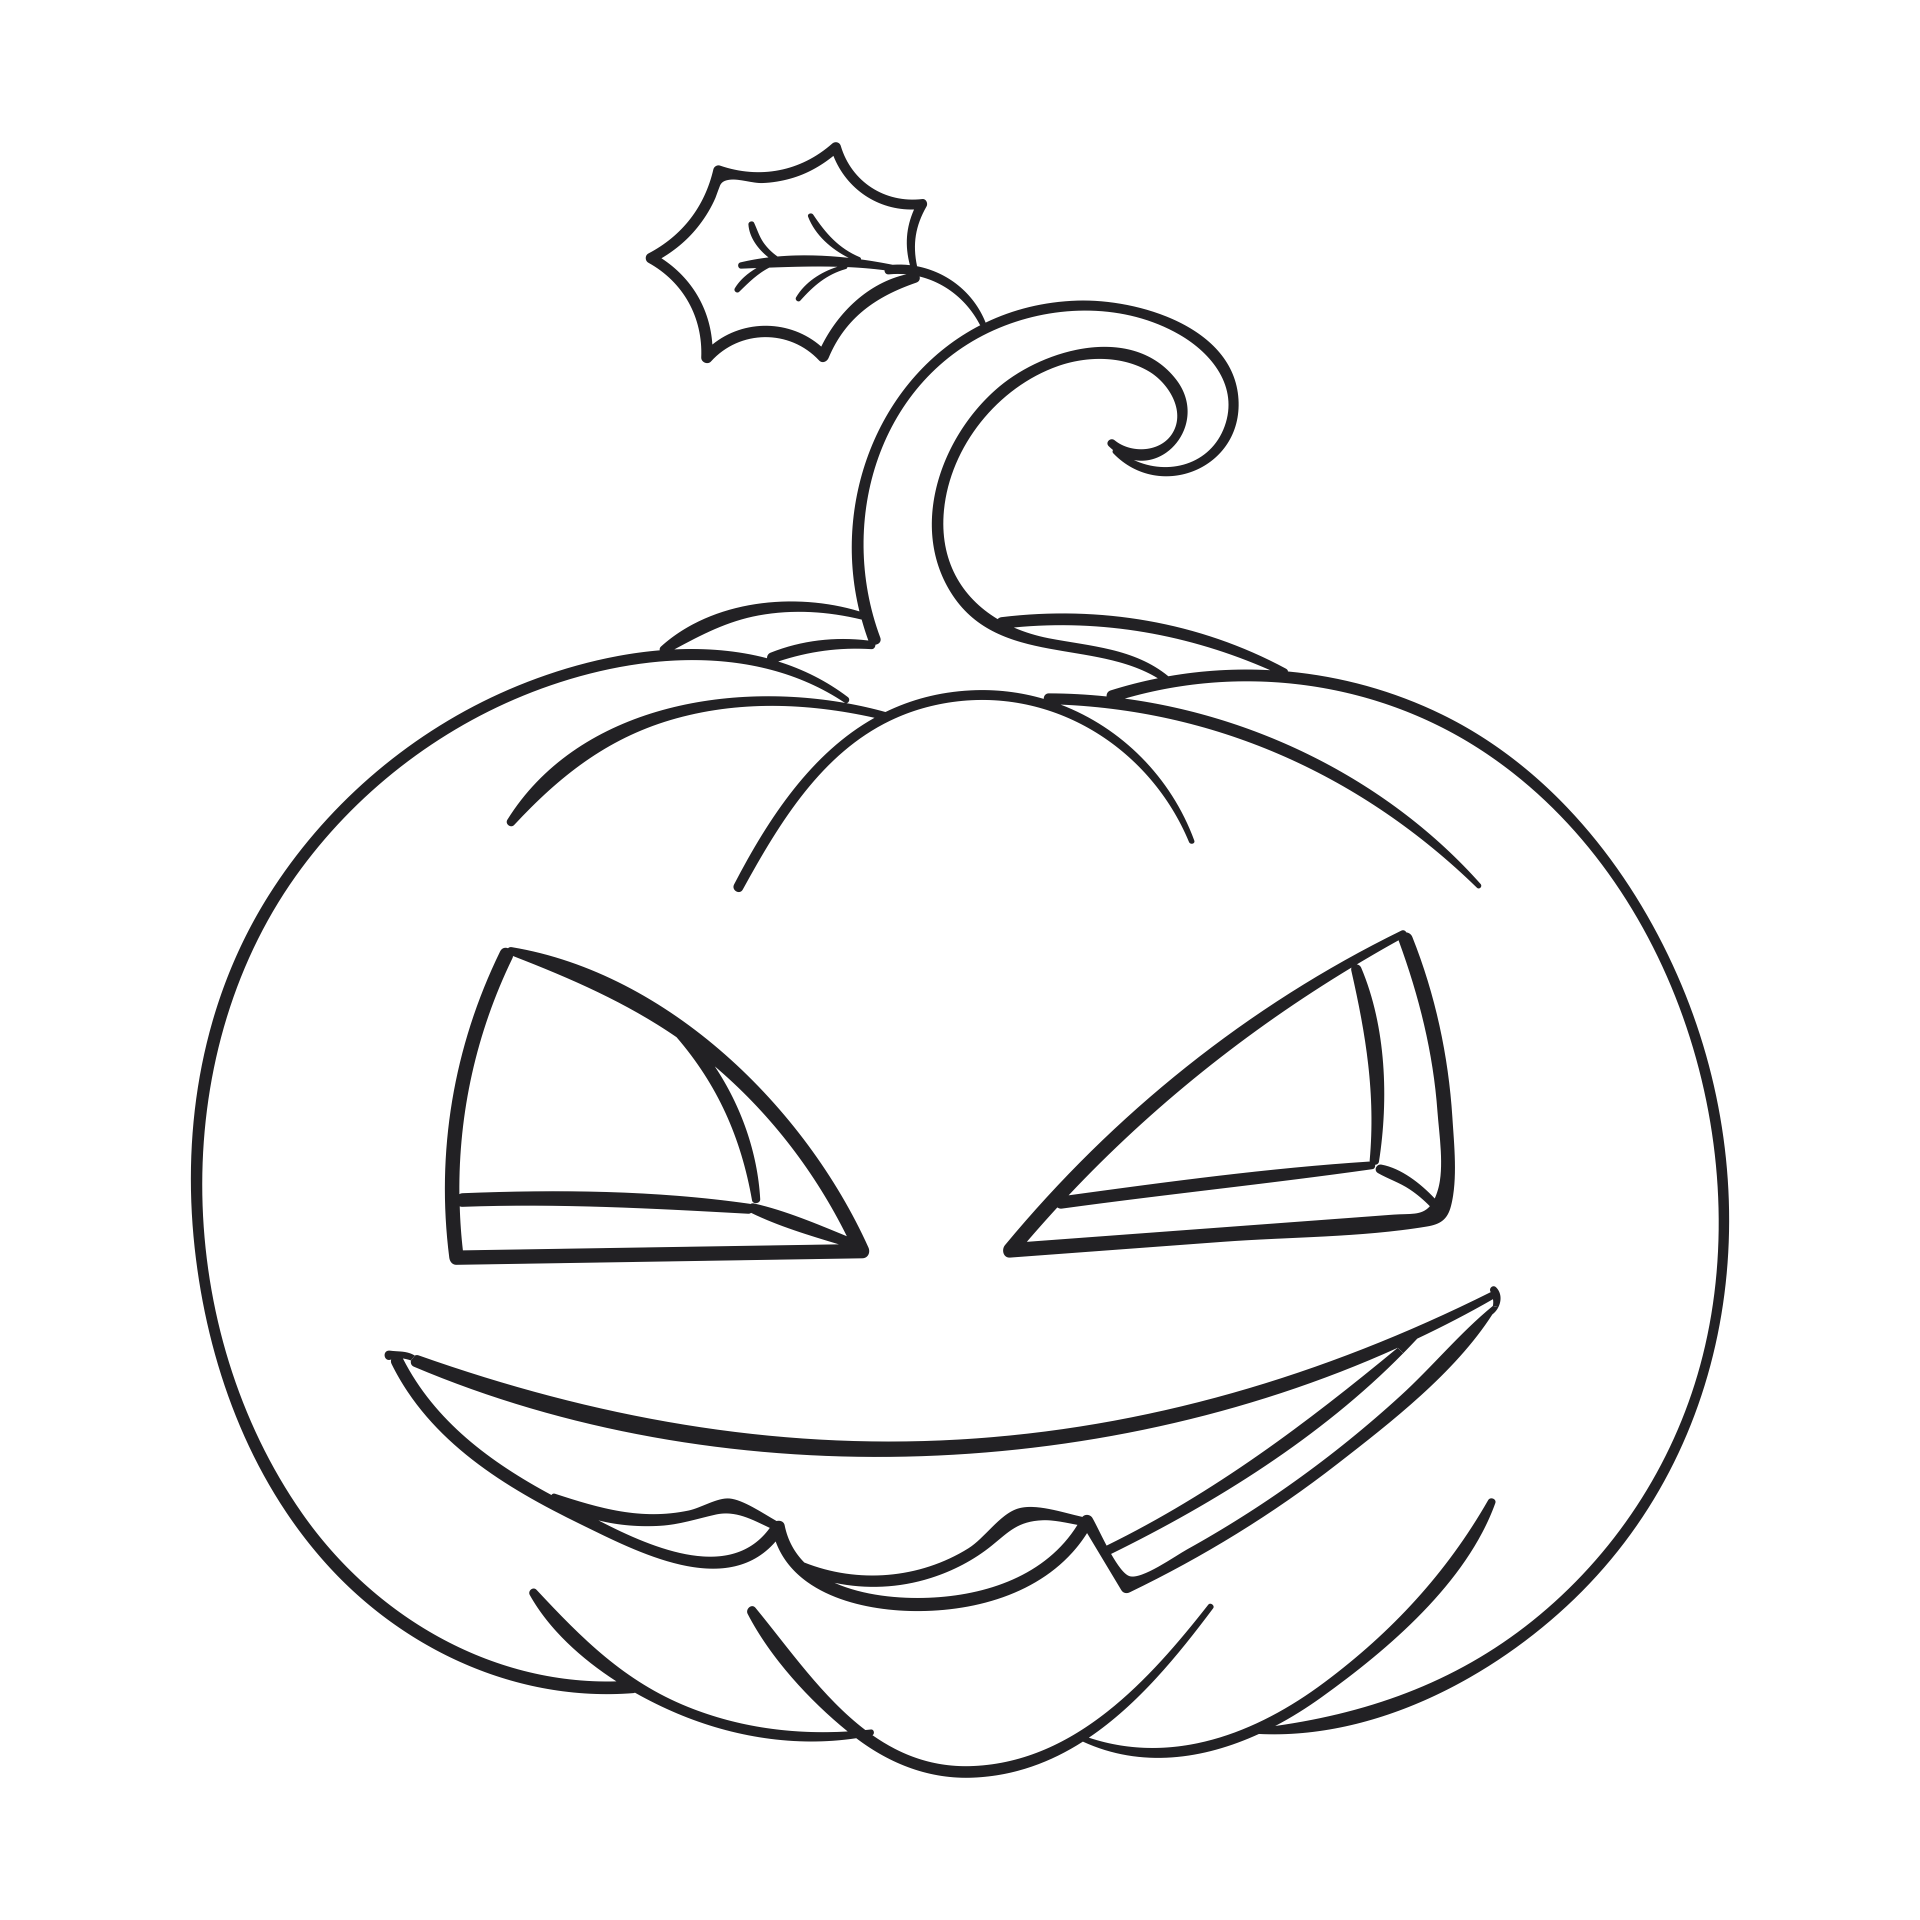 Black and White Pumpkin Coloring Pages